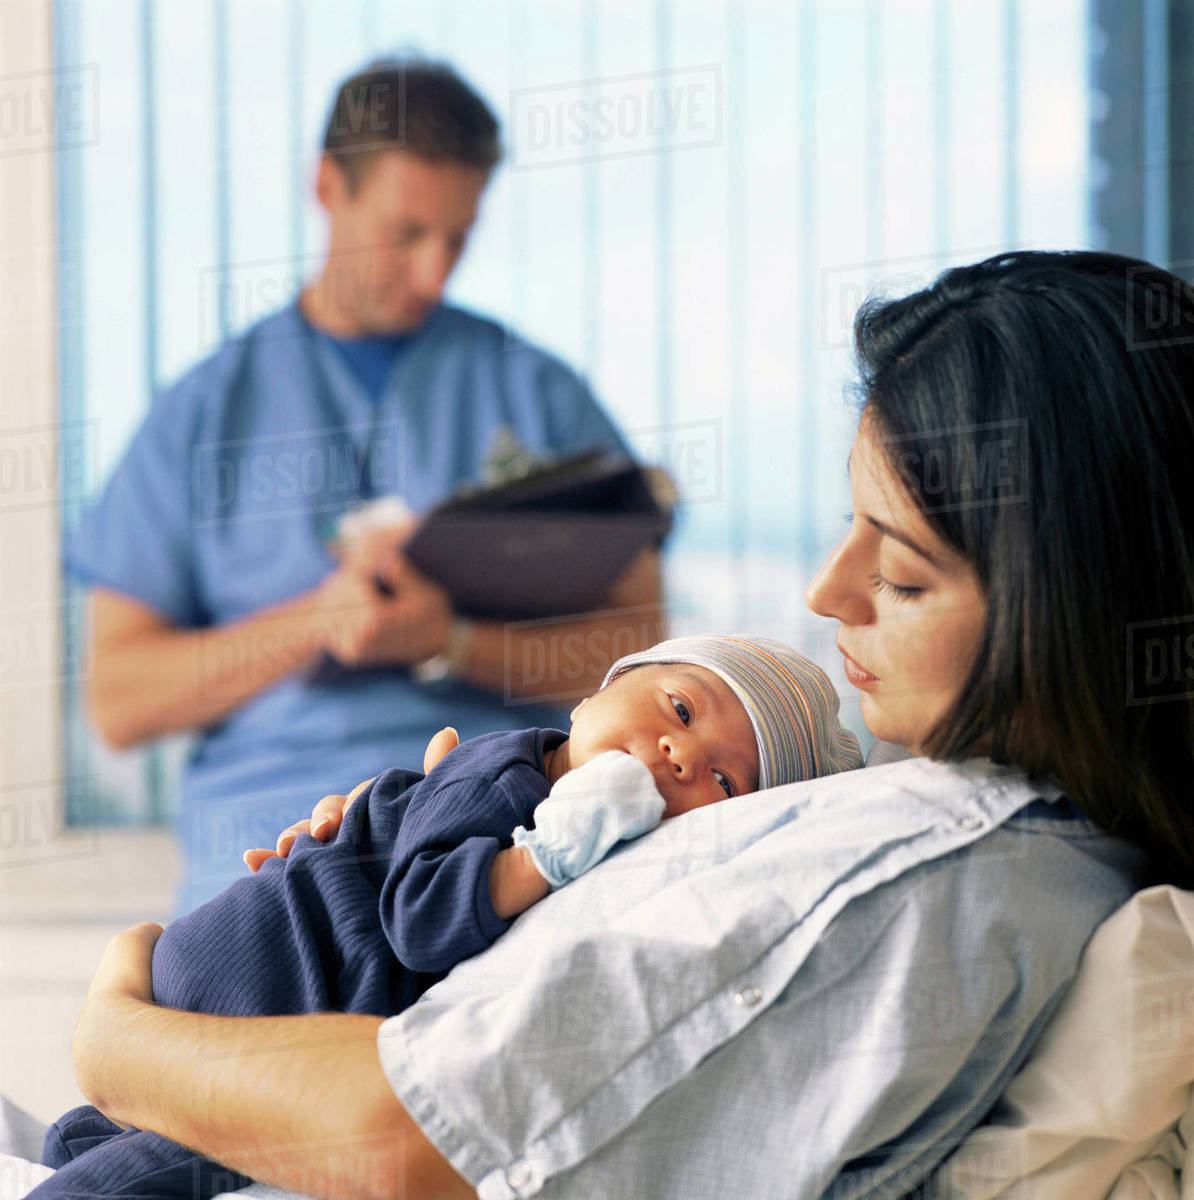 Mother holding baby in hospital bed with doctor in background Royalty-free stock photo